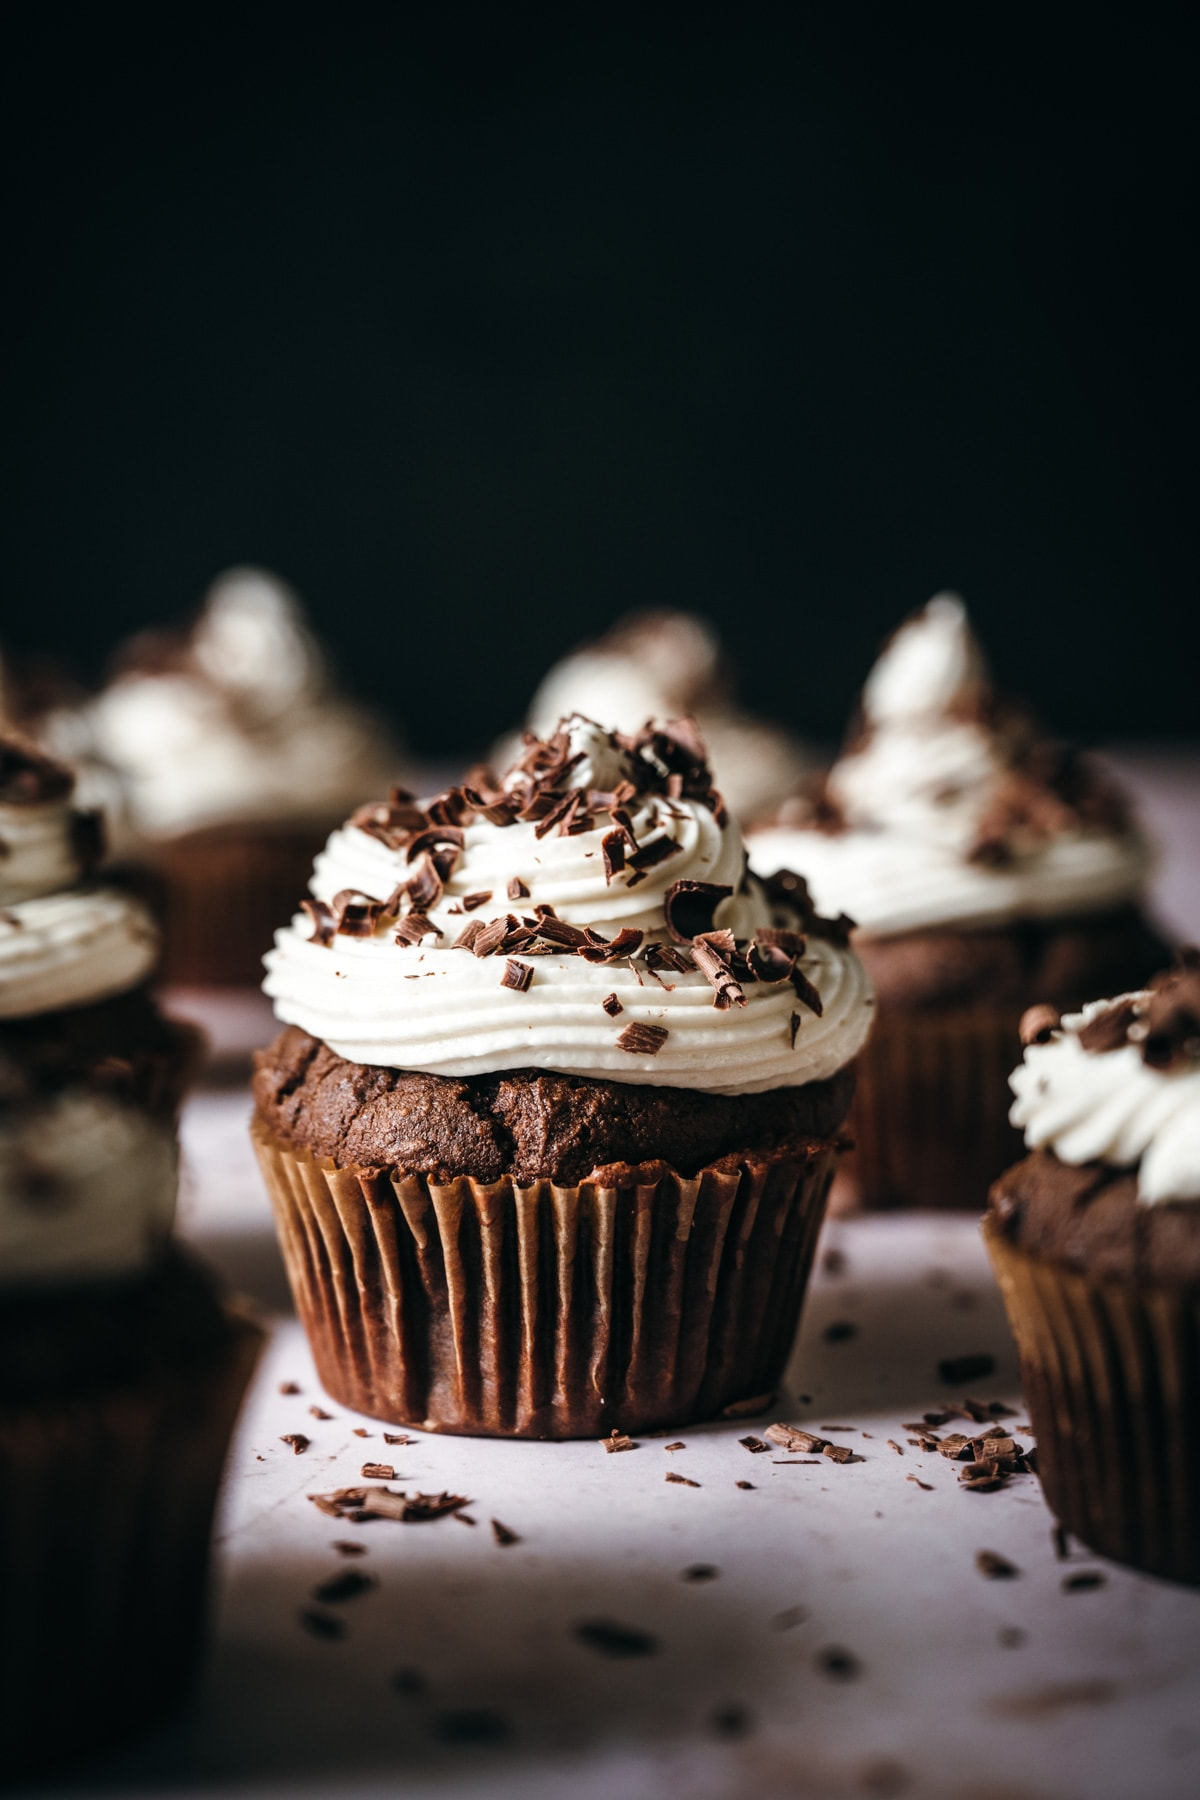 close up side view of vegan chocolate cupcake topped with vanilla frosting and chocolate shavings.